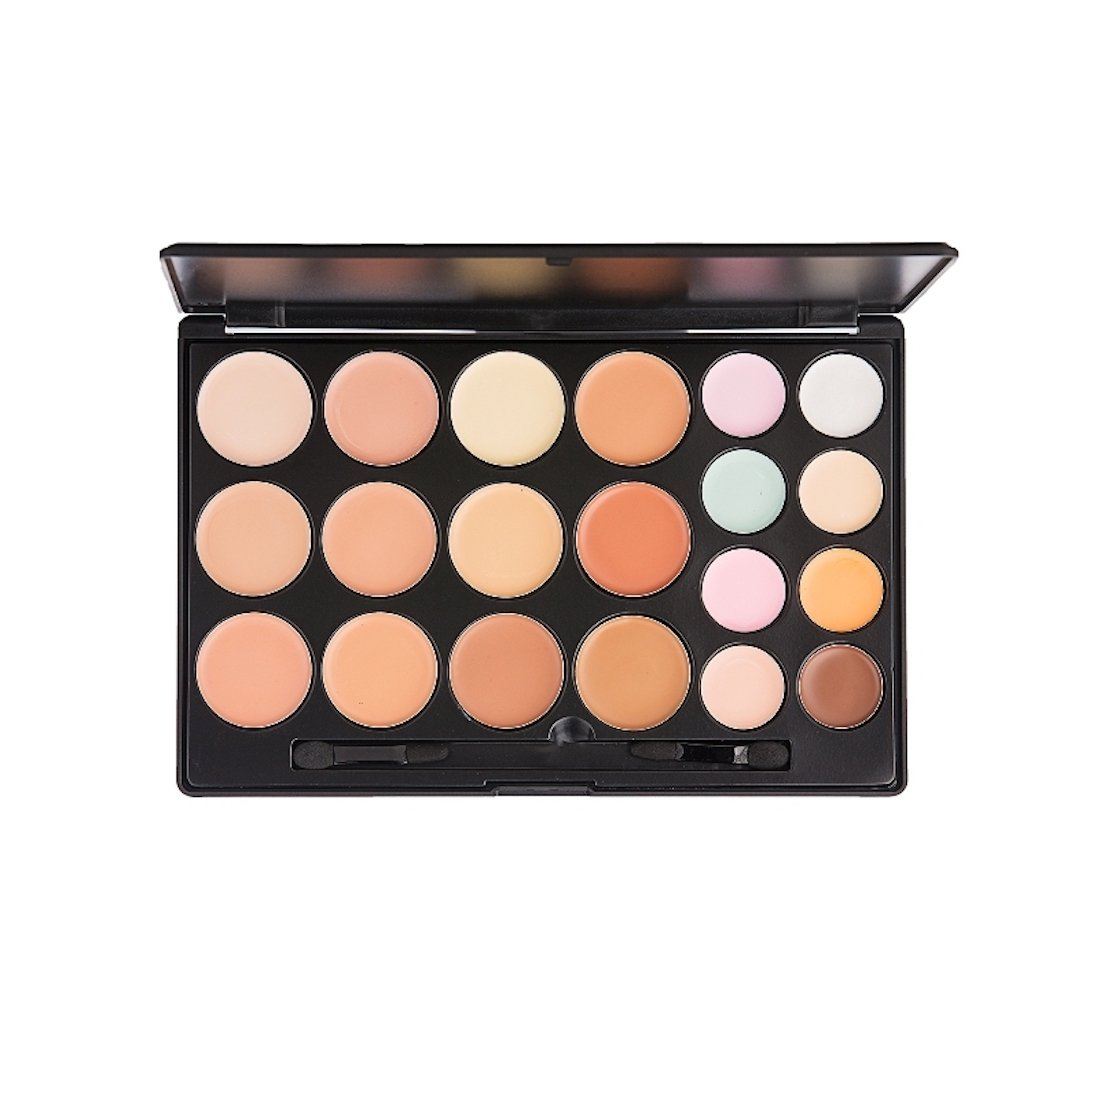 ELLITE Styles Professional Cosmetics Makeup Concealer Clearance SALE New life Limited time 20 C Color